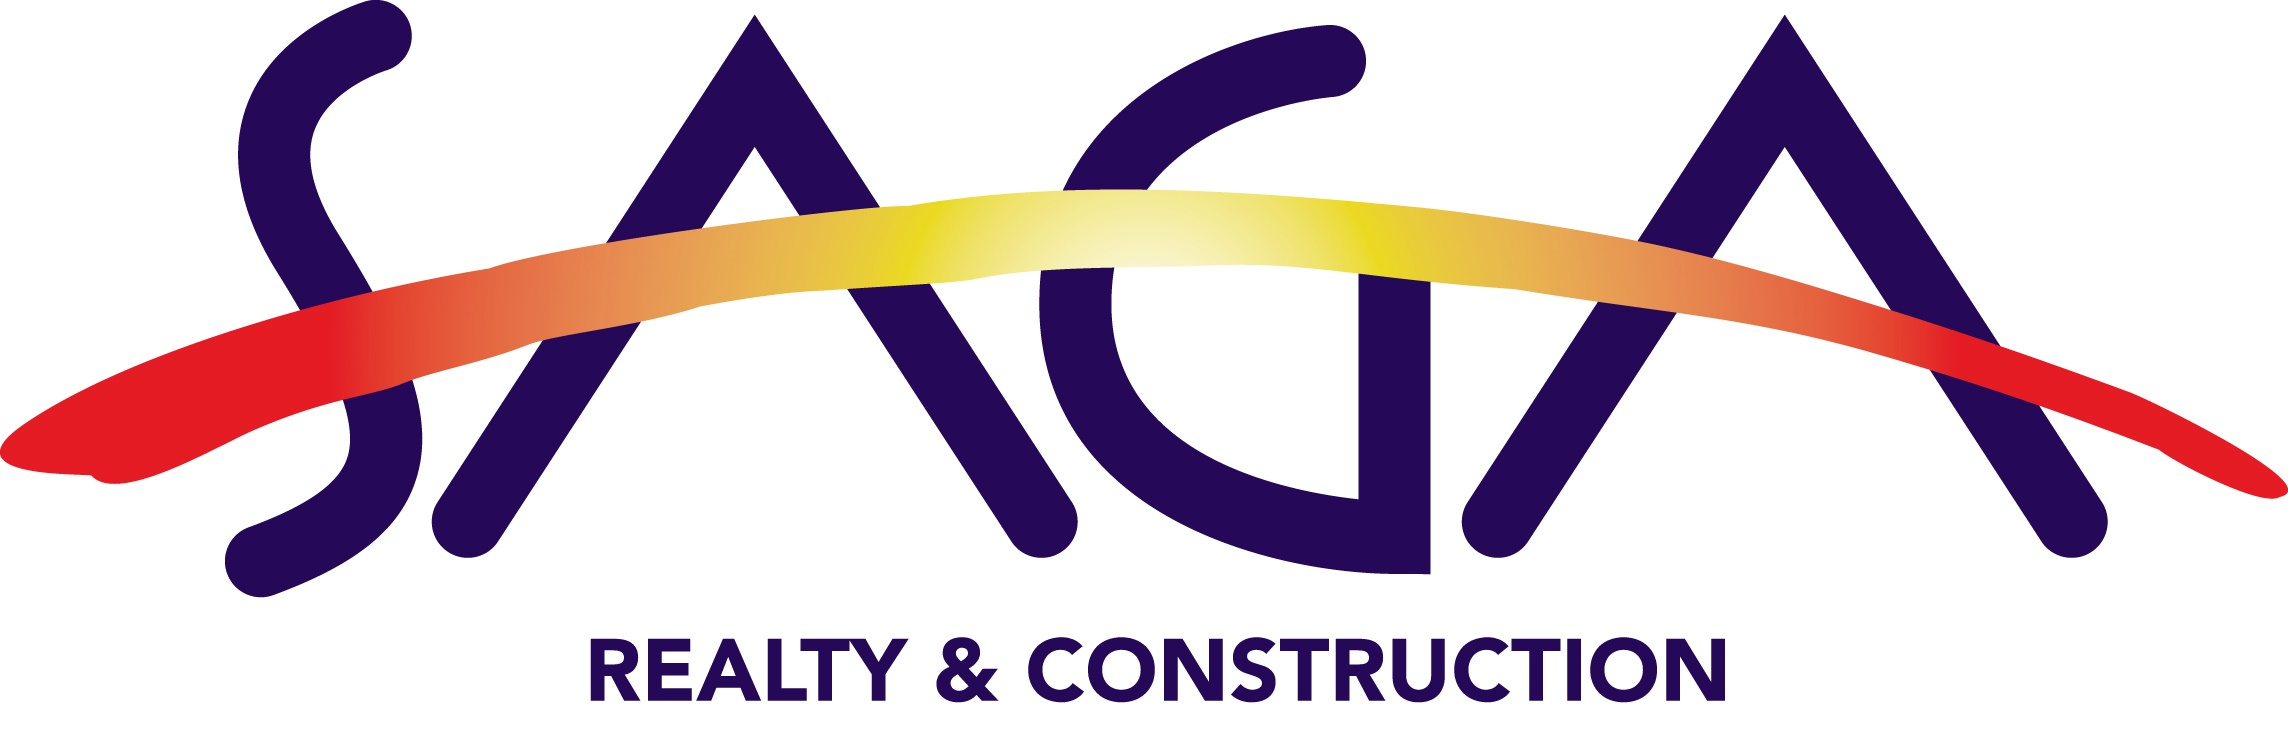 SAGA Realty & Construction logo